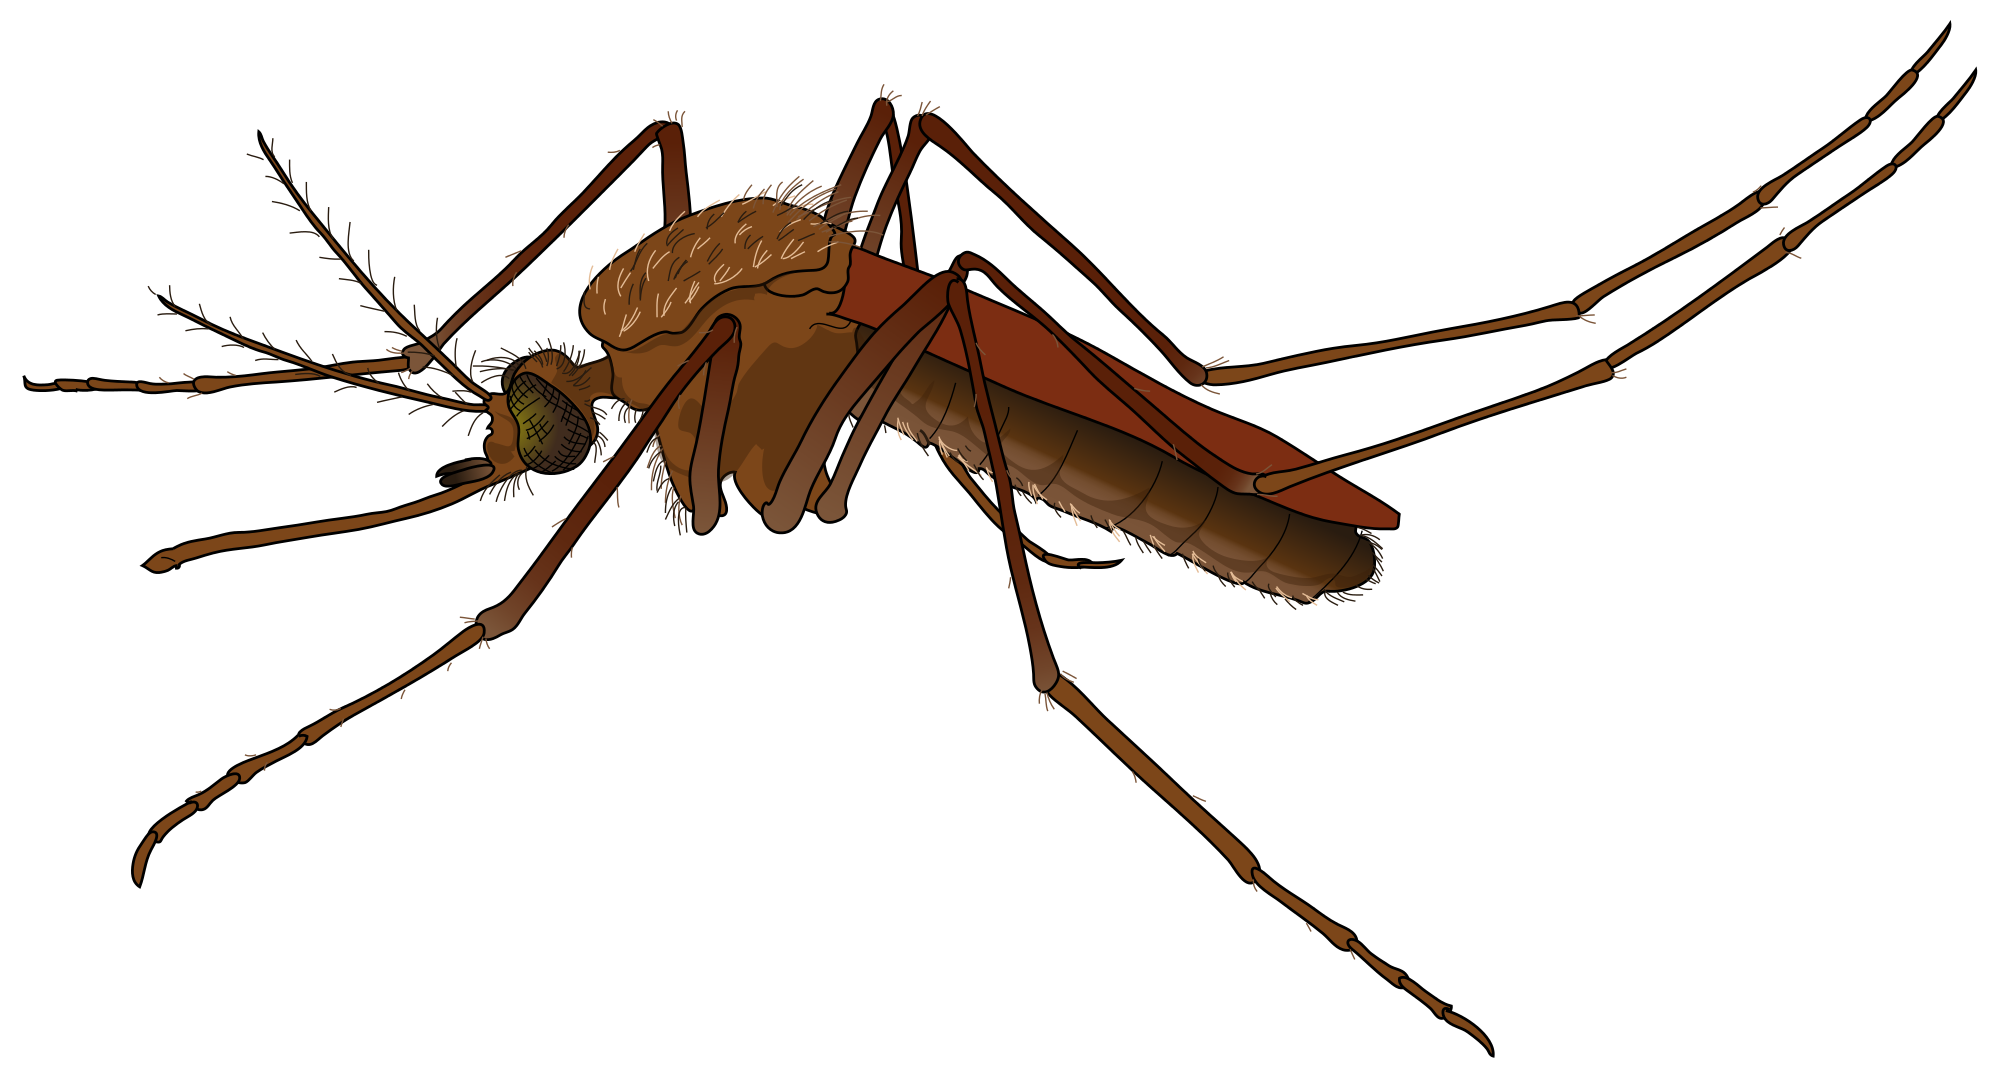 Mosquito PNG images free download.